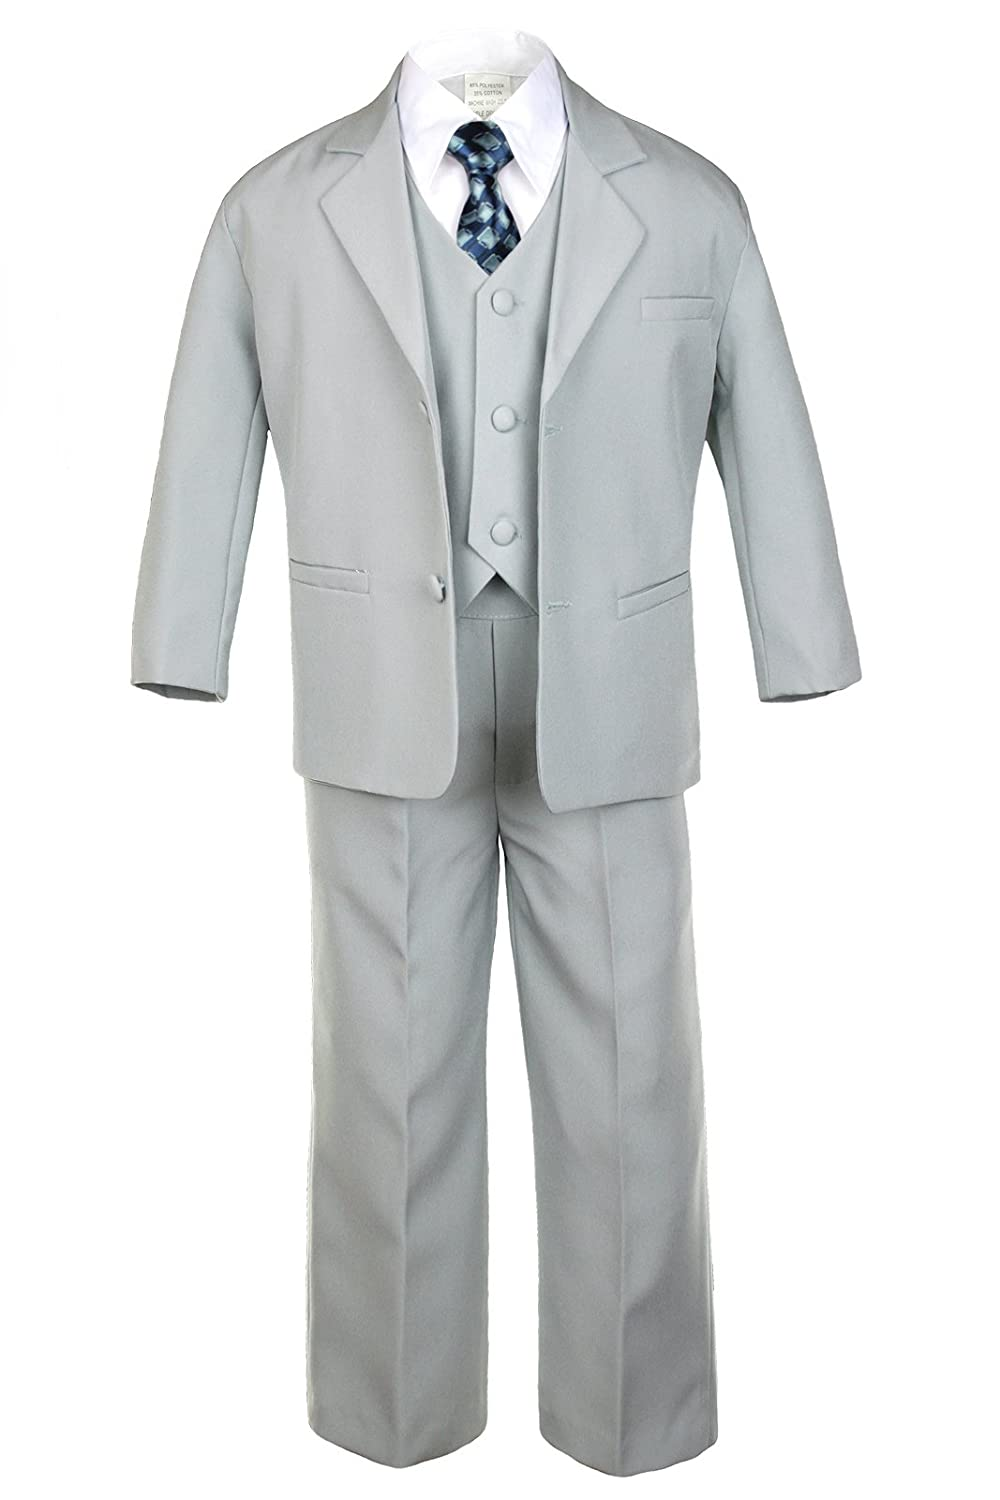 Boys Silver Tuxedo Suits with Super intense Challenge the lowest price SALE Geometric Satin Necktie Baby from